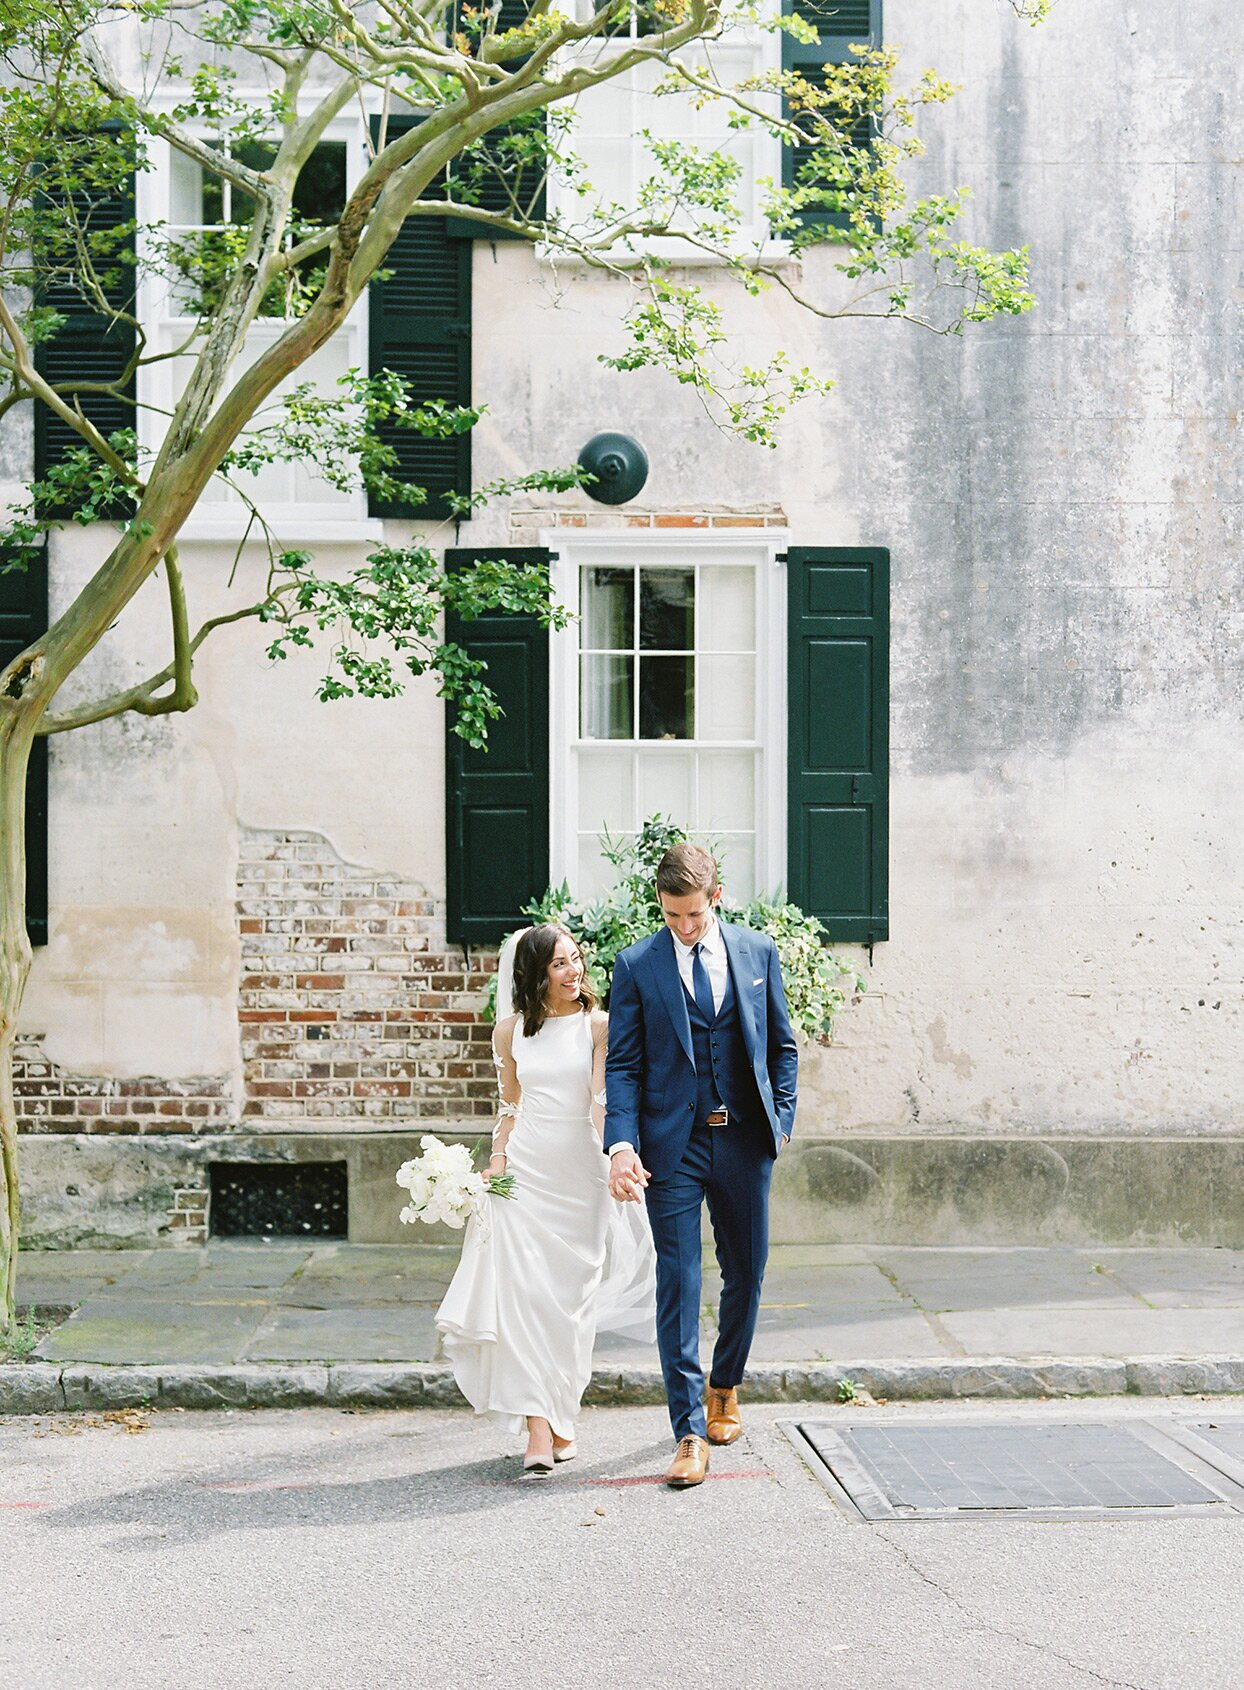 This Couple Celebrated Their Charleston Nuptials On The Porch Of